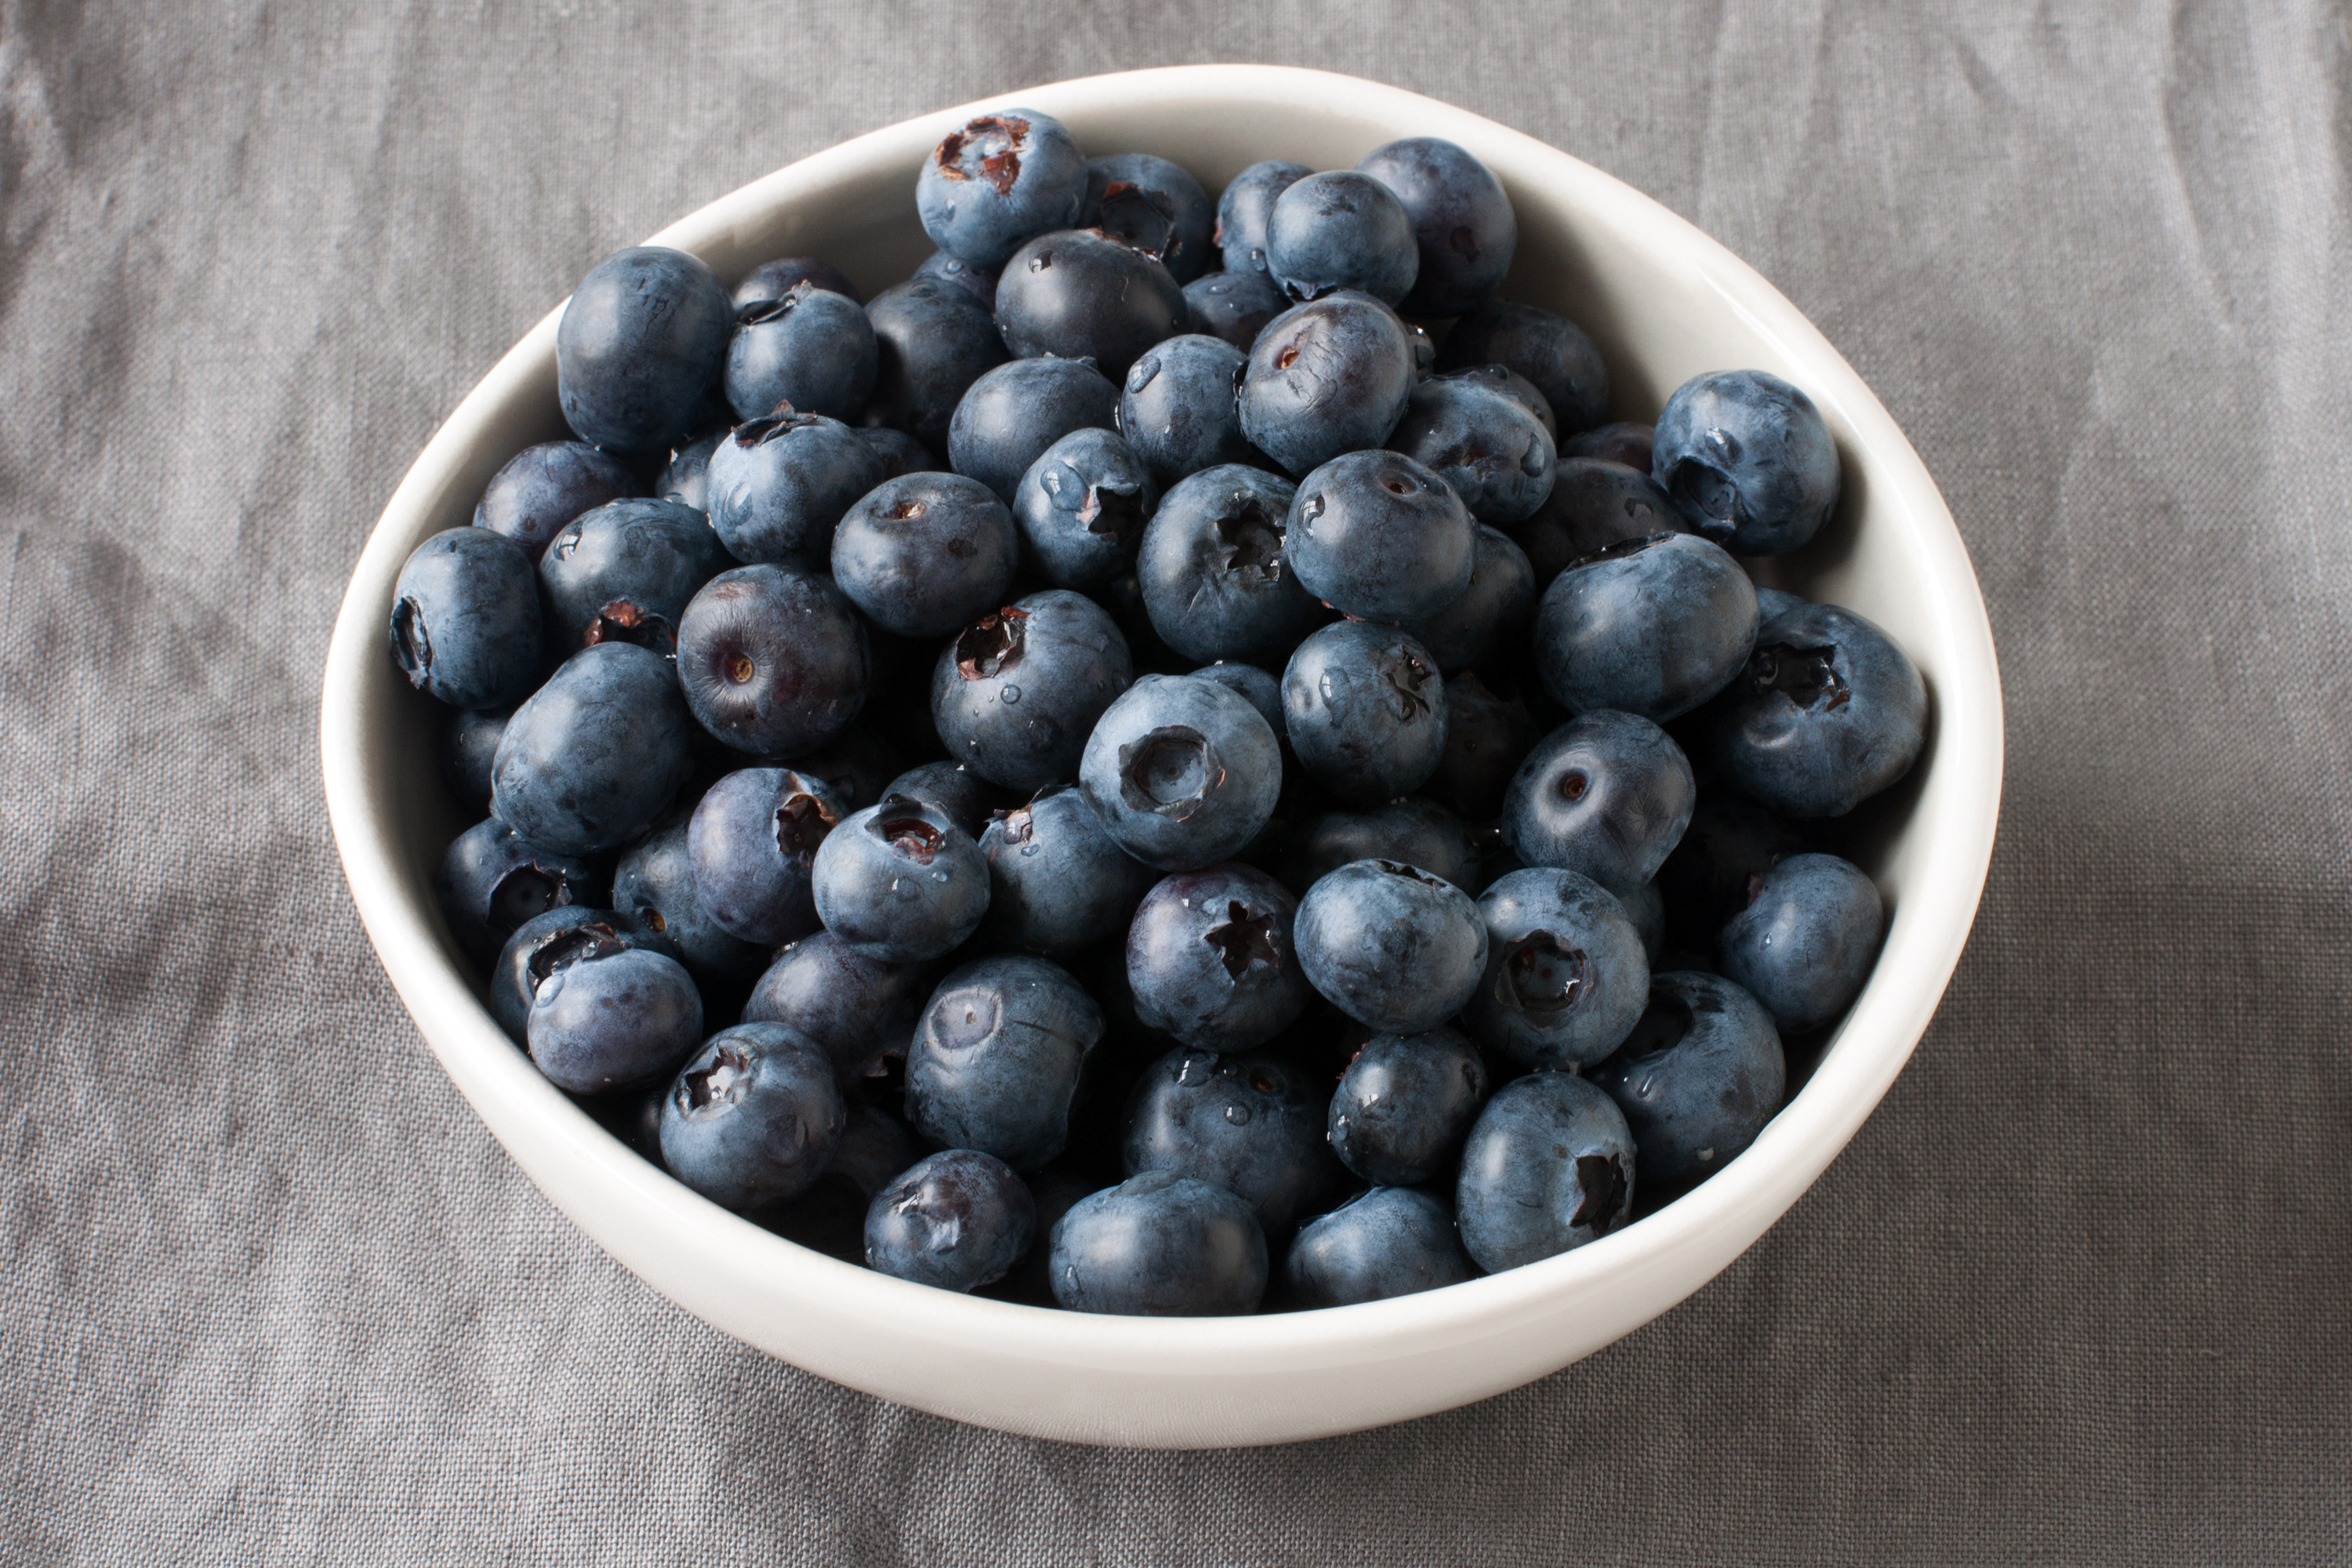 What Is a Serving Size of Blueberries? | LIVESTRONG.COM